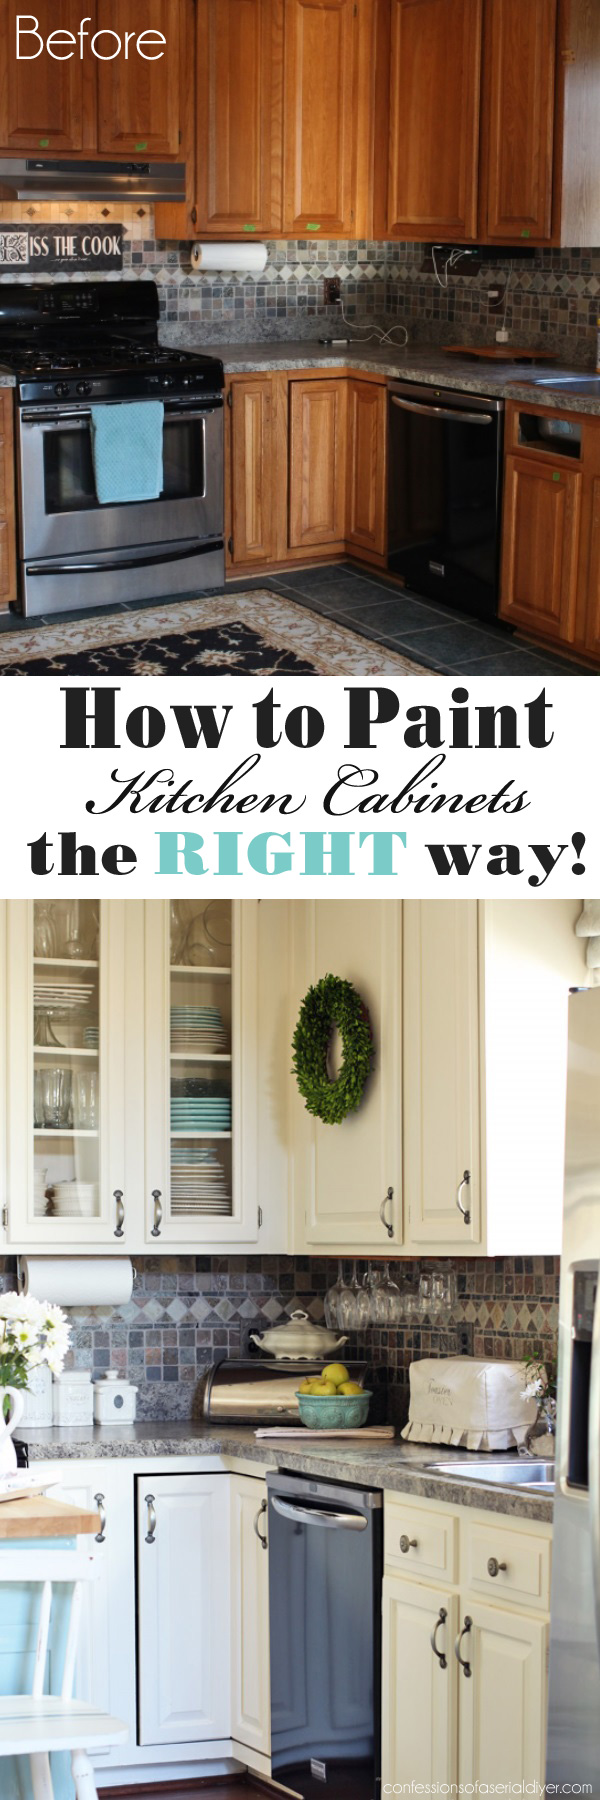 painted kitchen cabinets three years later confessions of a rh confessionsofaserialdiyer com how to paint your oak kitchen cabinets white how to paint your kitchen cabinets antique white